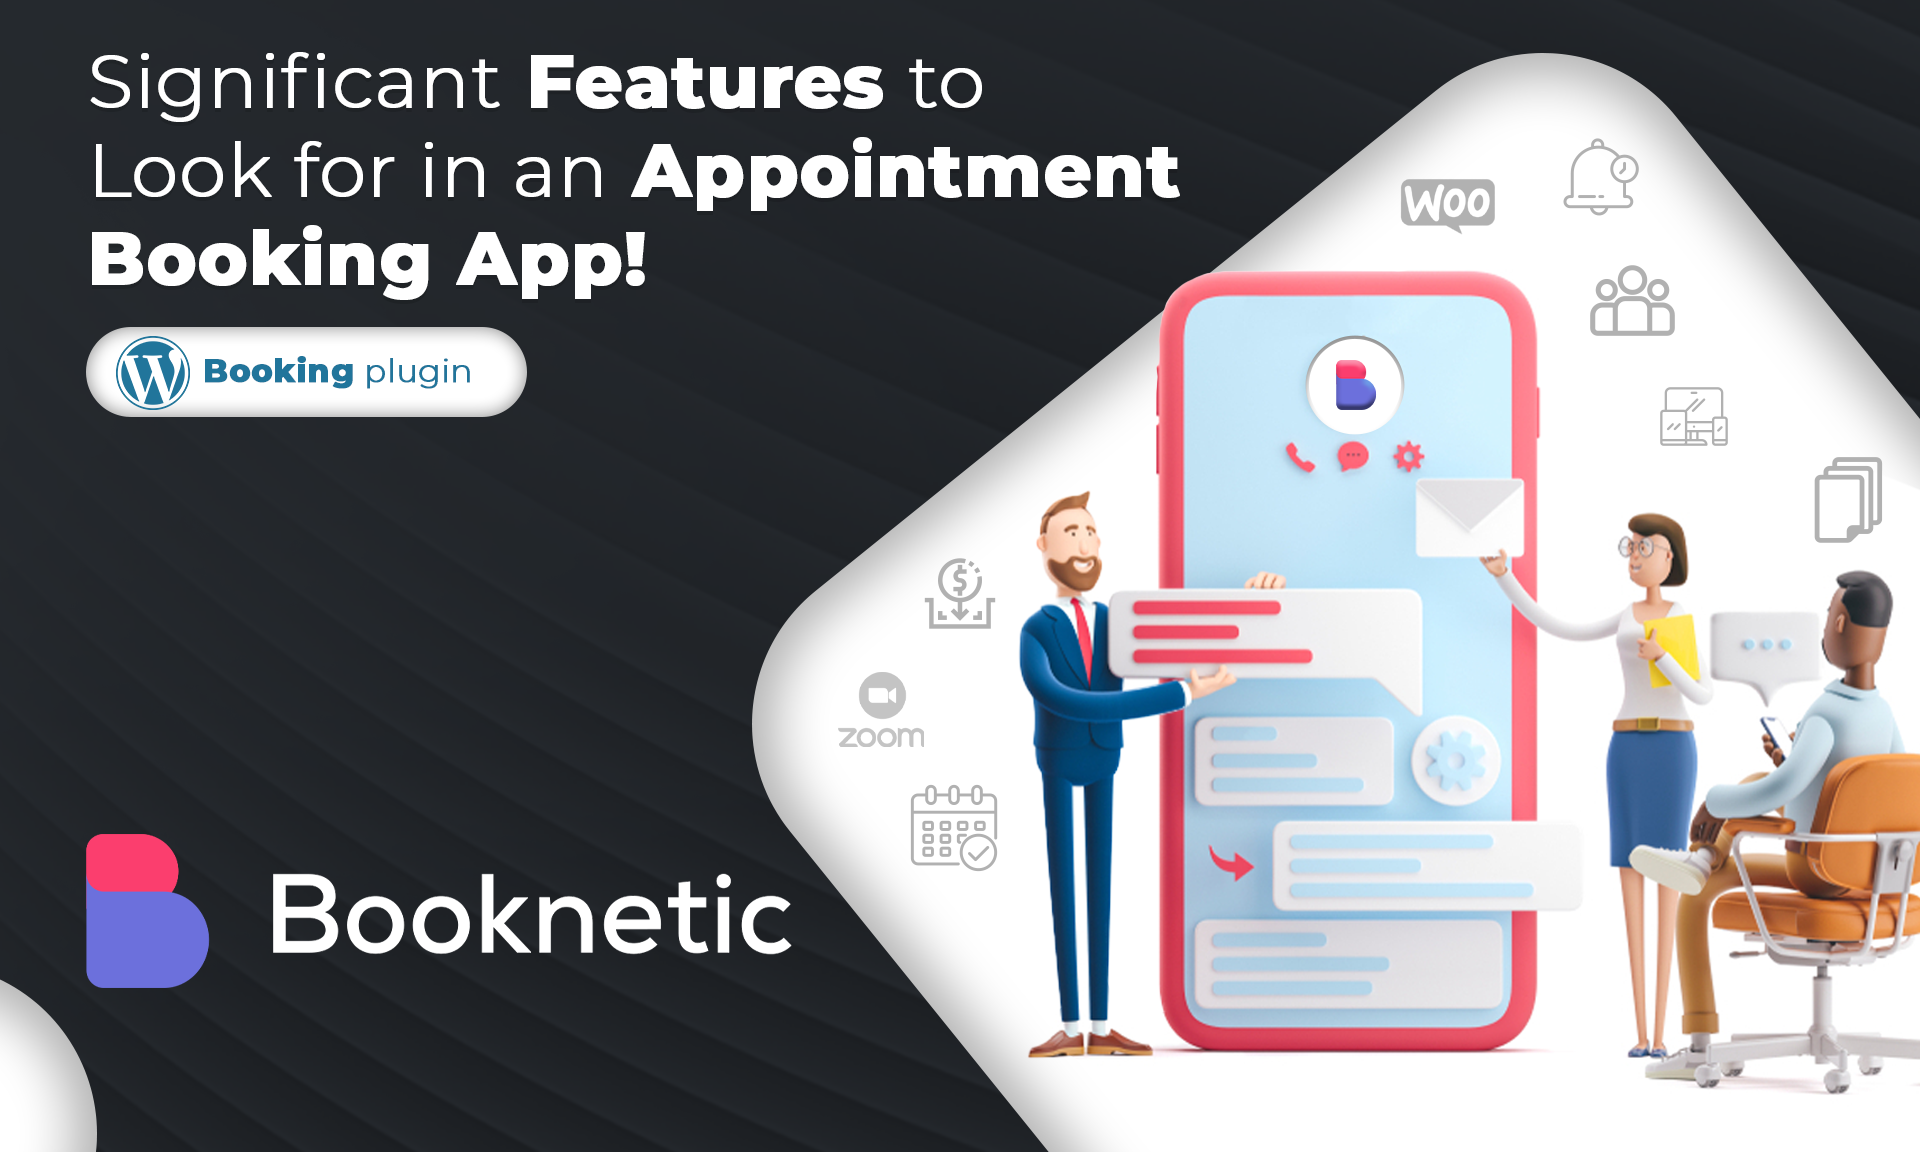 Significant Features to Look for in an Appointment Booking App